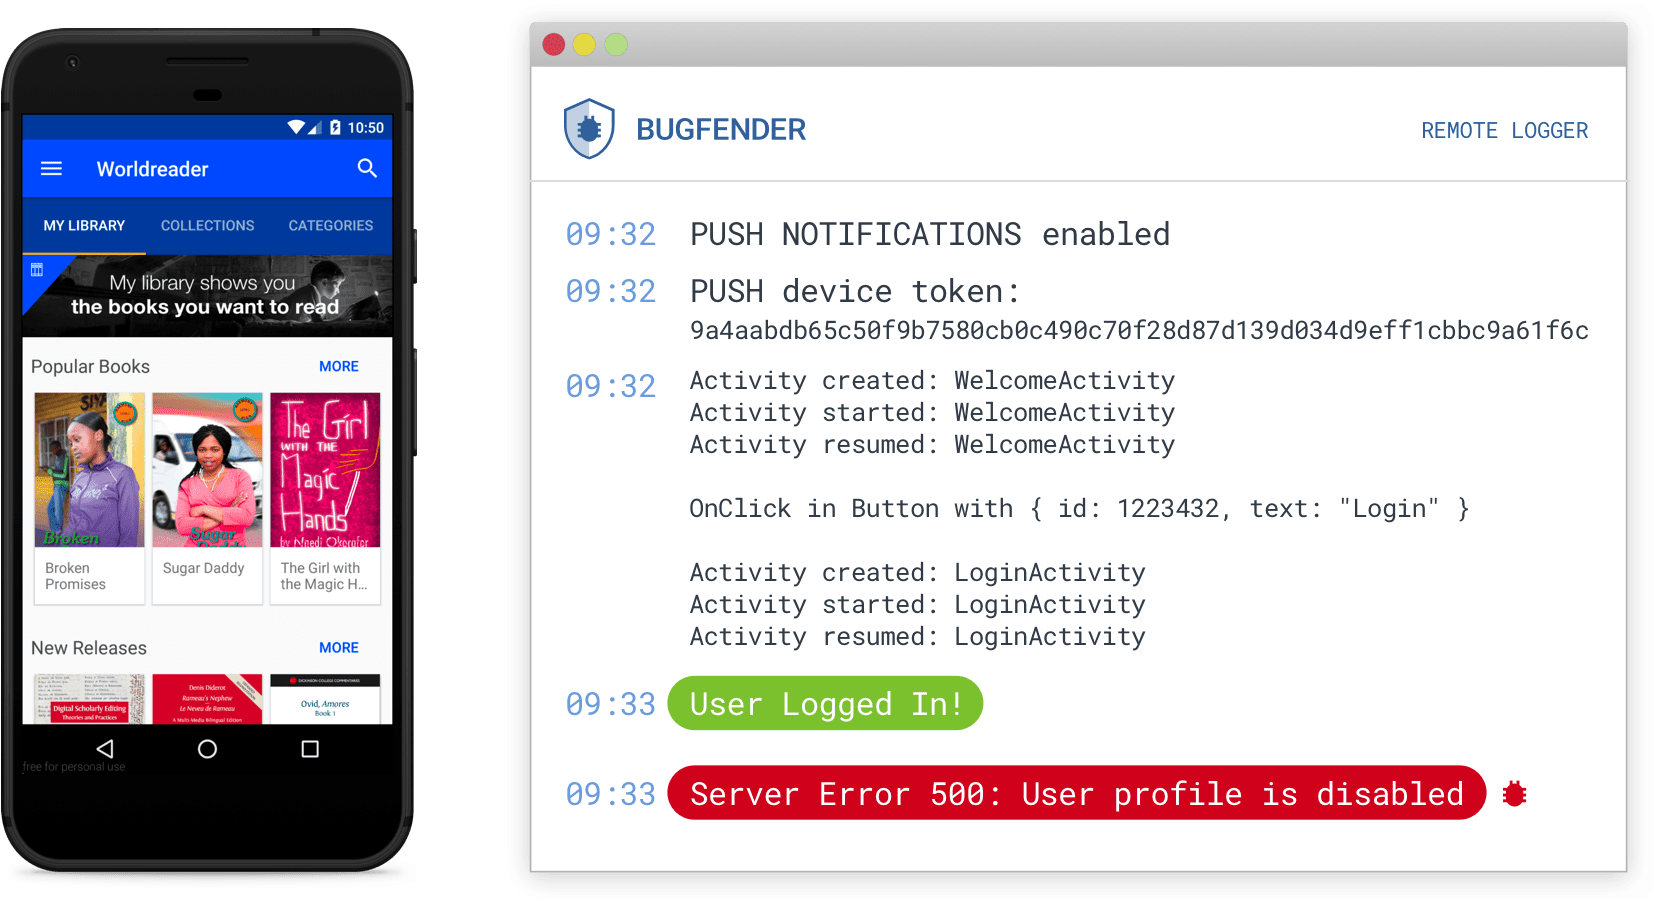 Android Remote Logging bugfender for android | bugfender